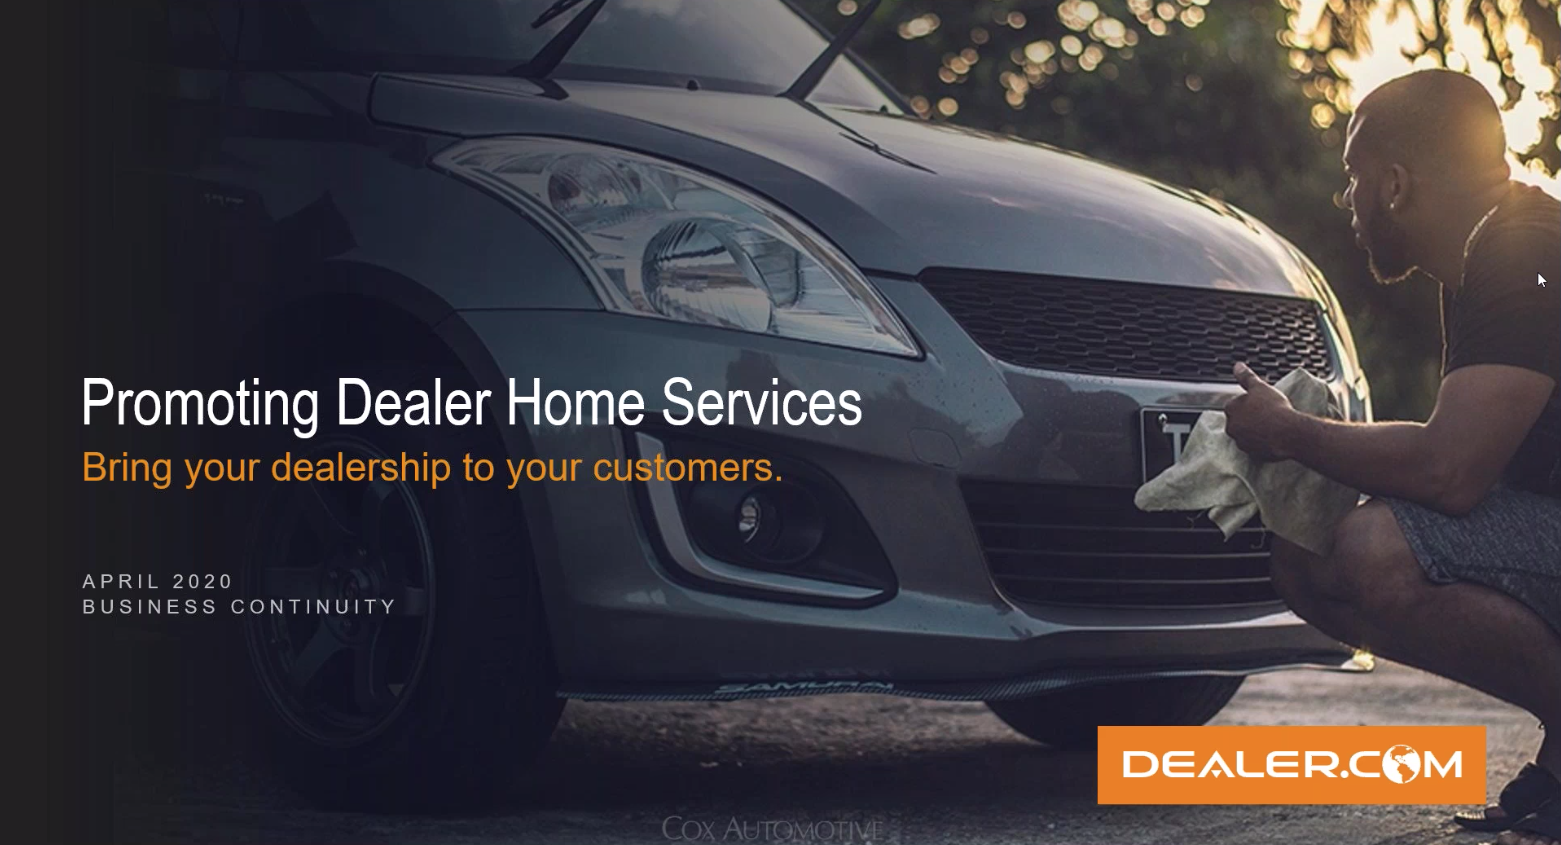 Promoting Dealer Home Services: Bring Your Dealership to Your Customers